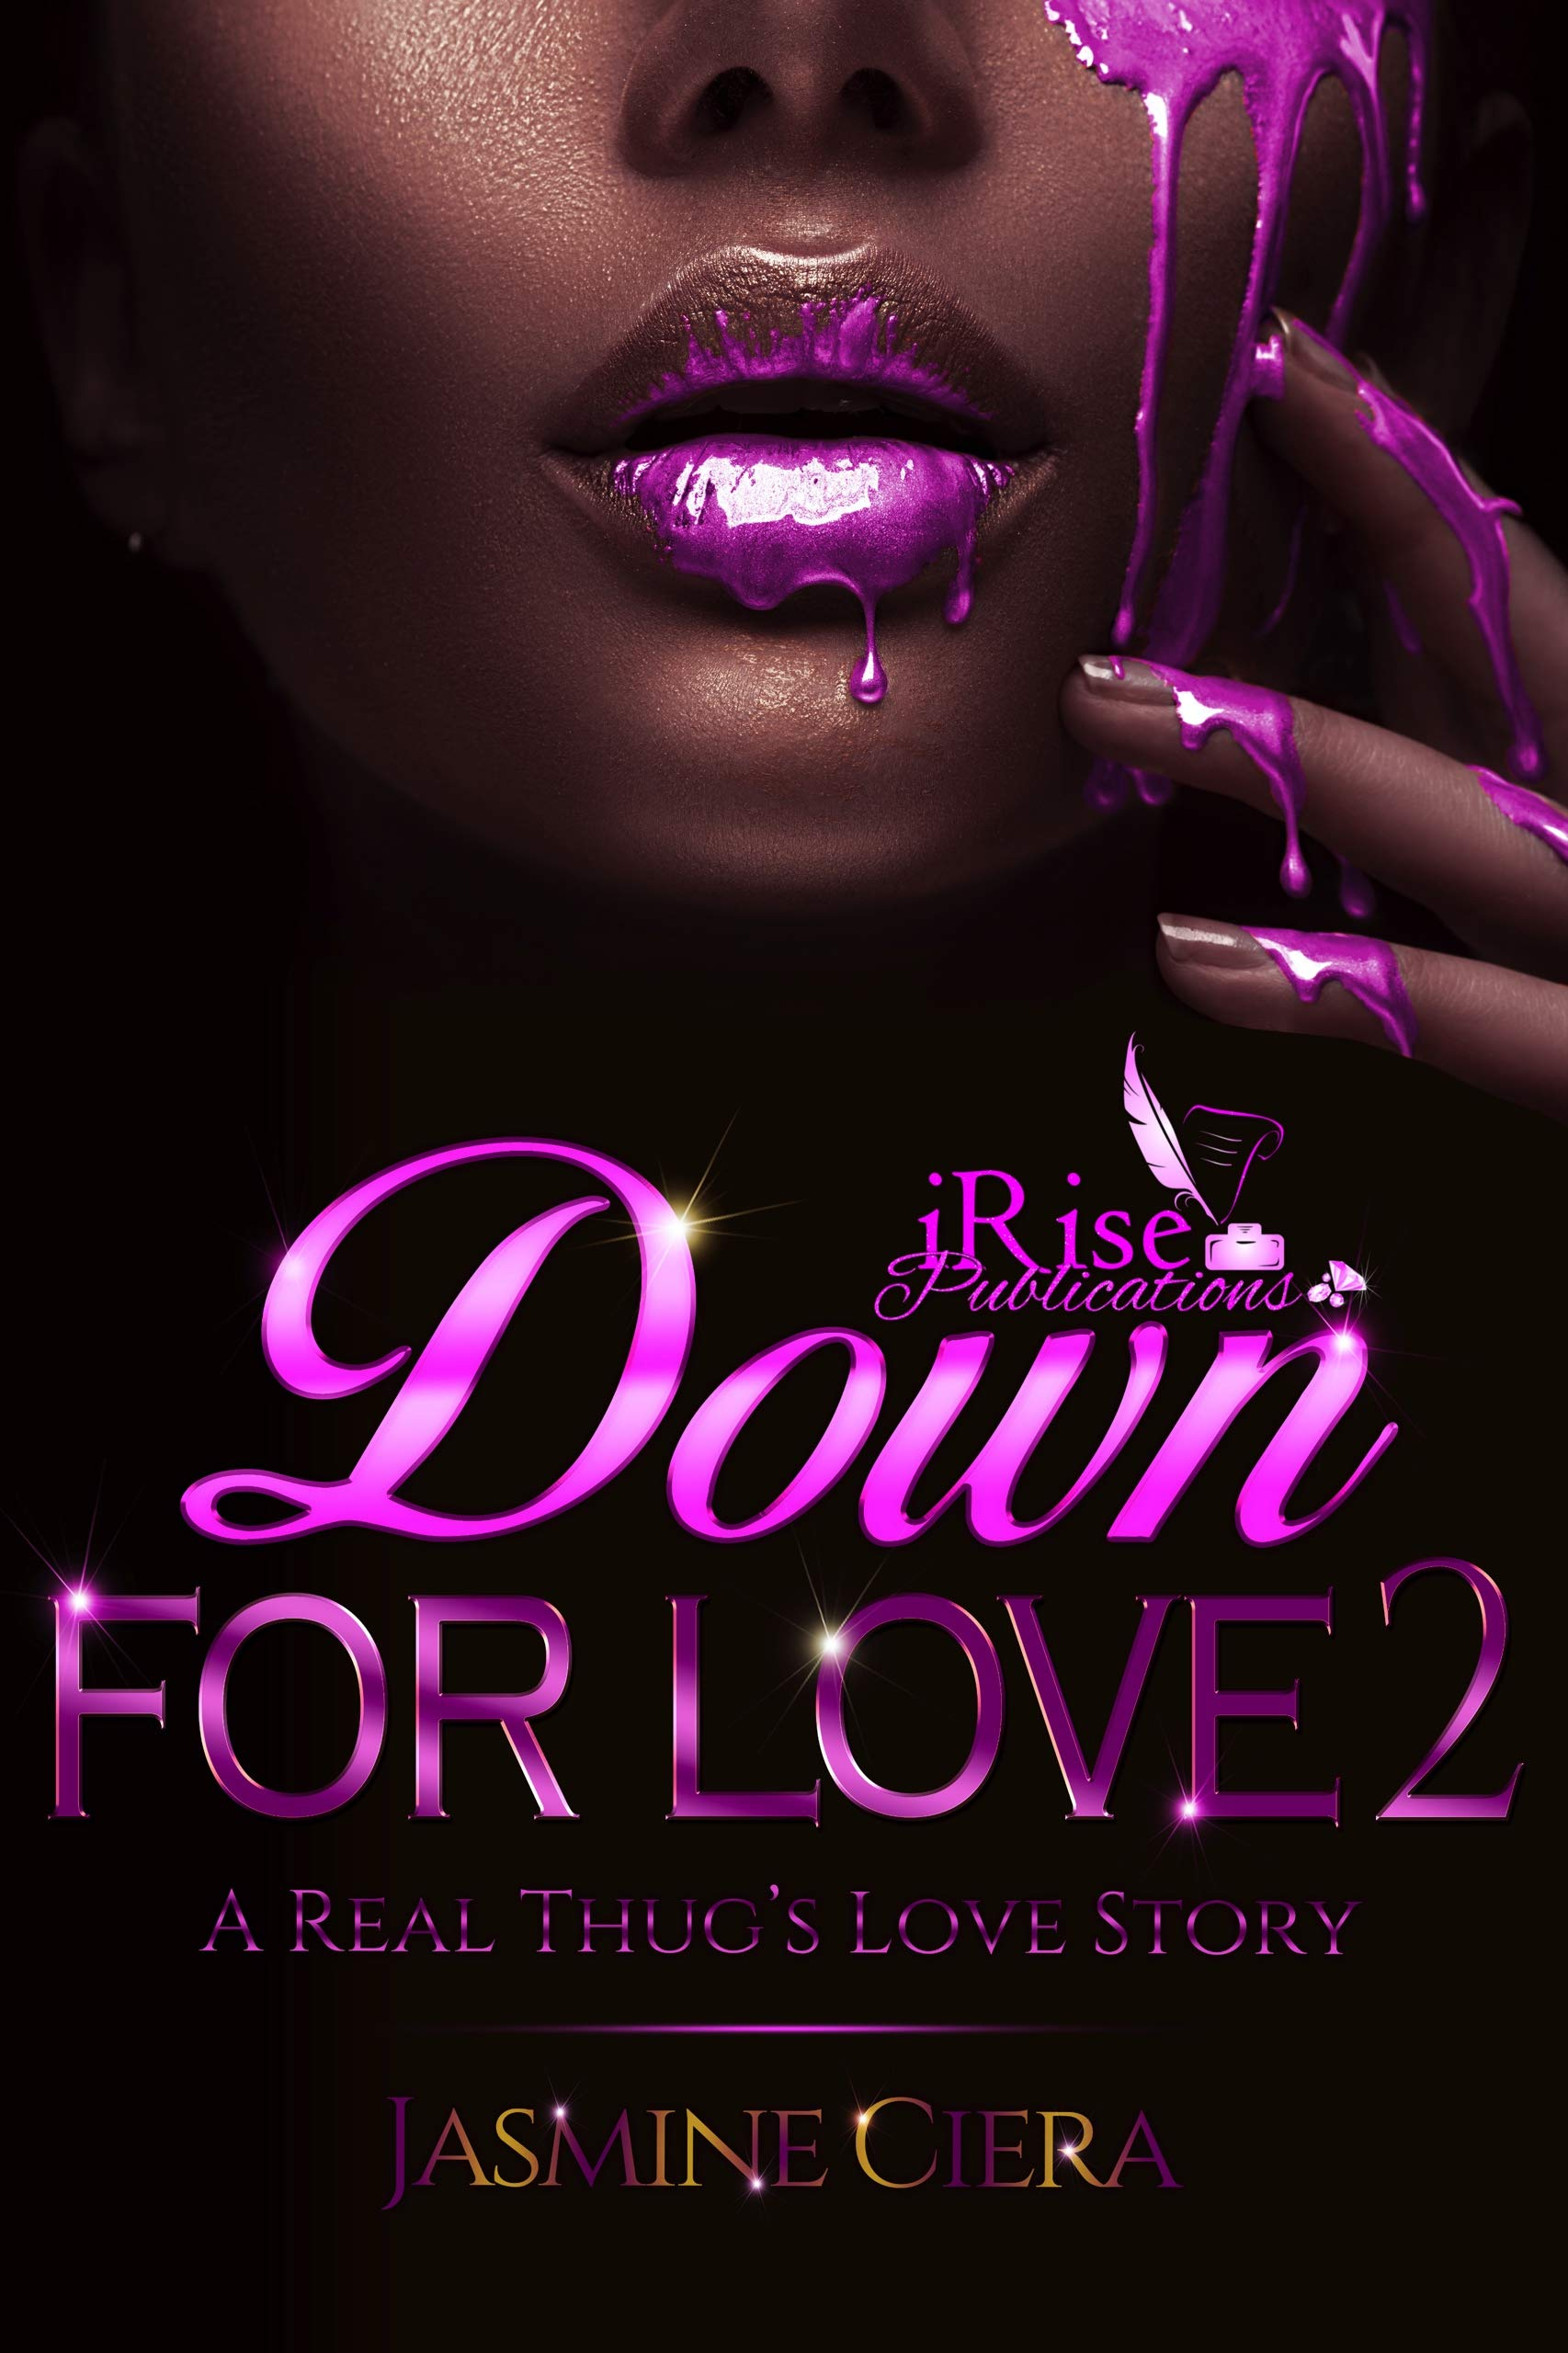 Down For Love 2: A Real Thug's Love Story